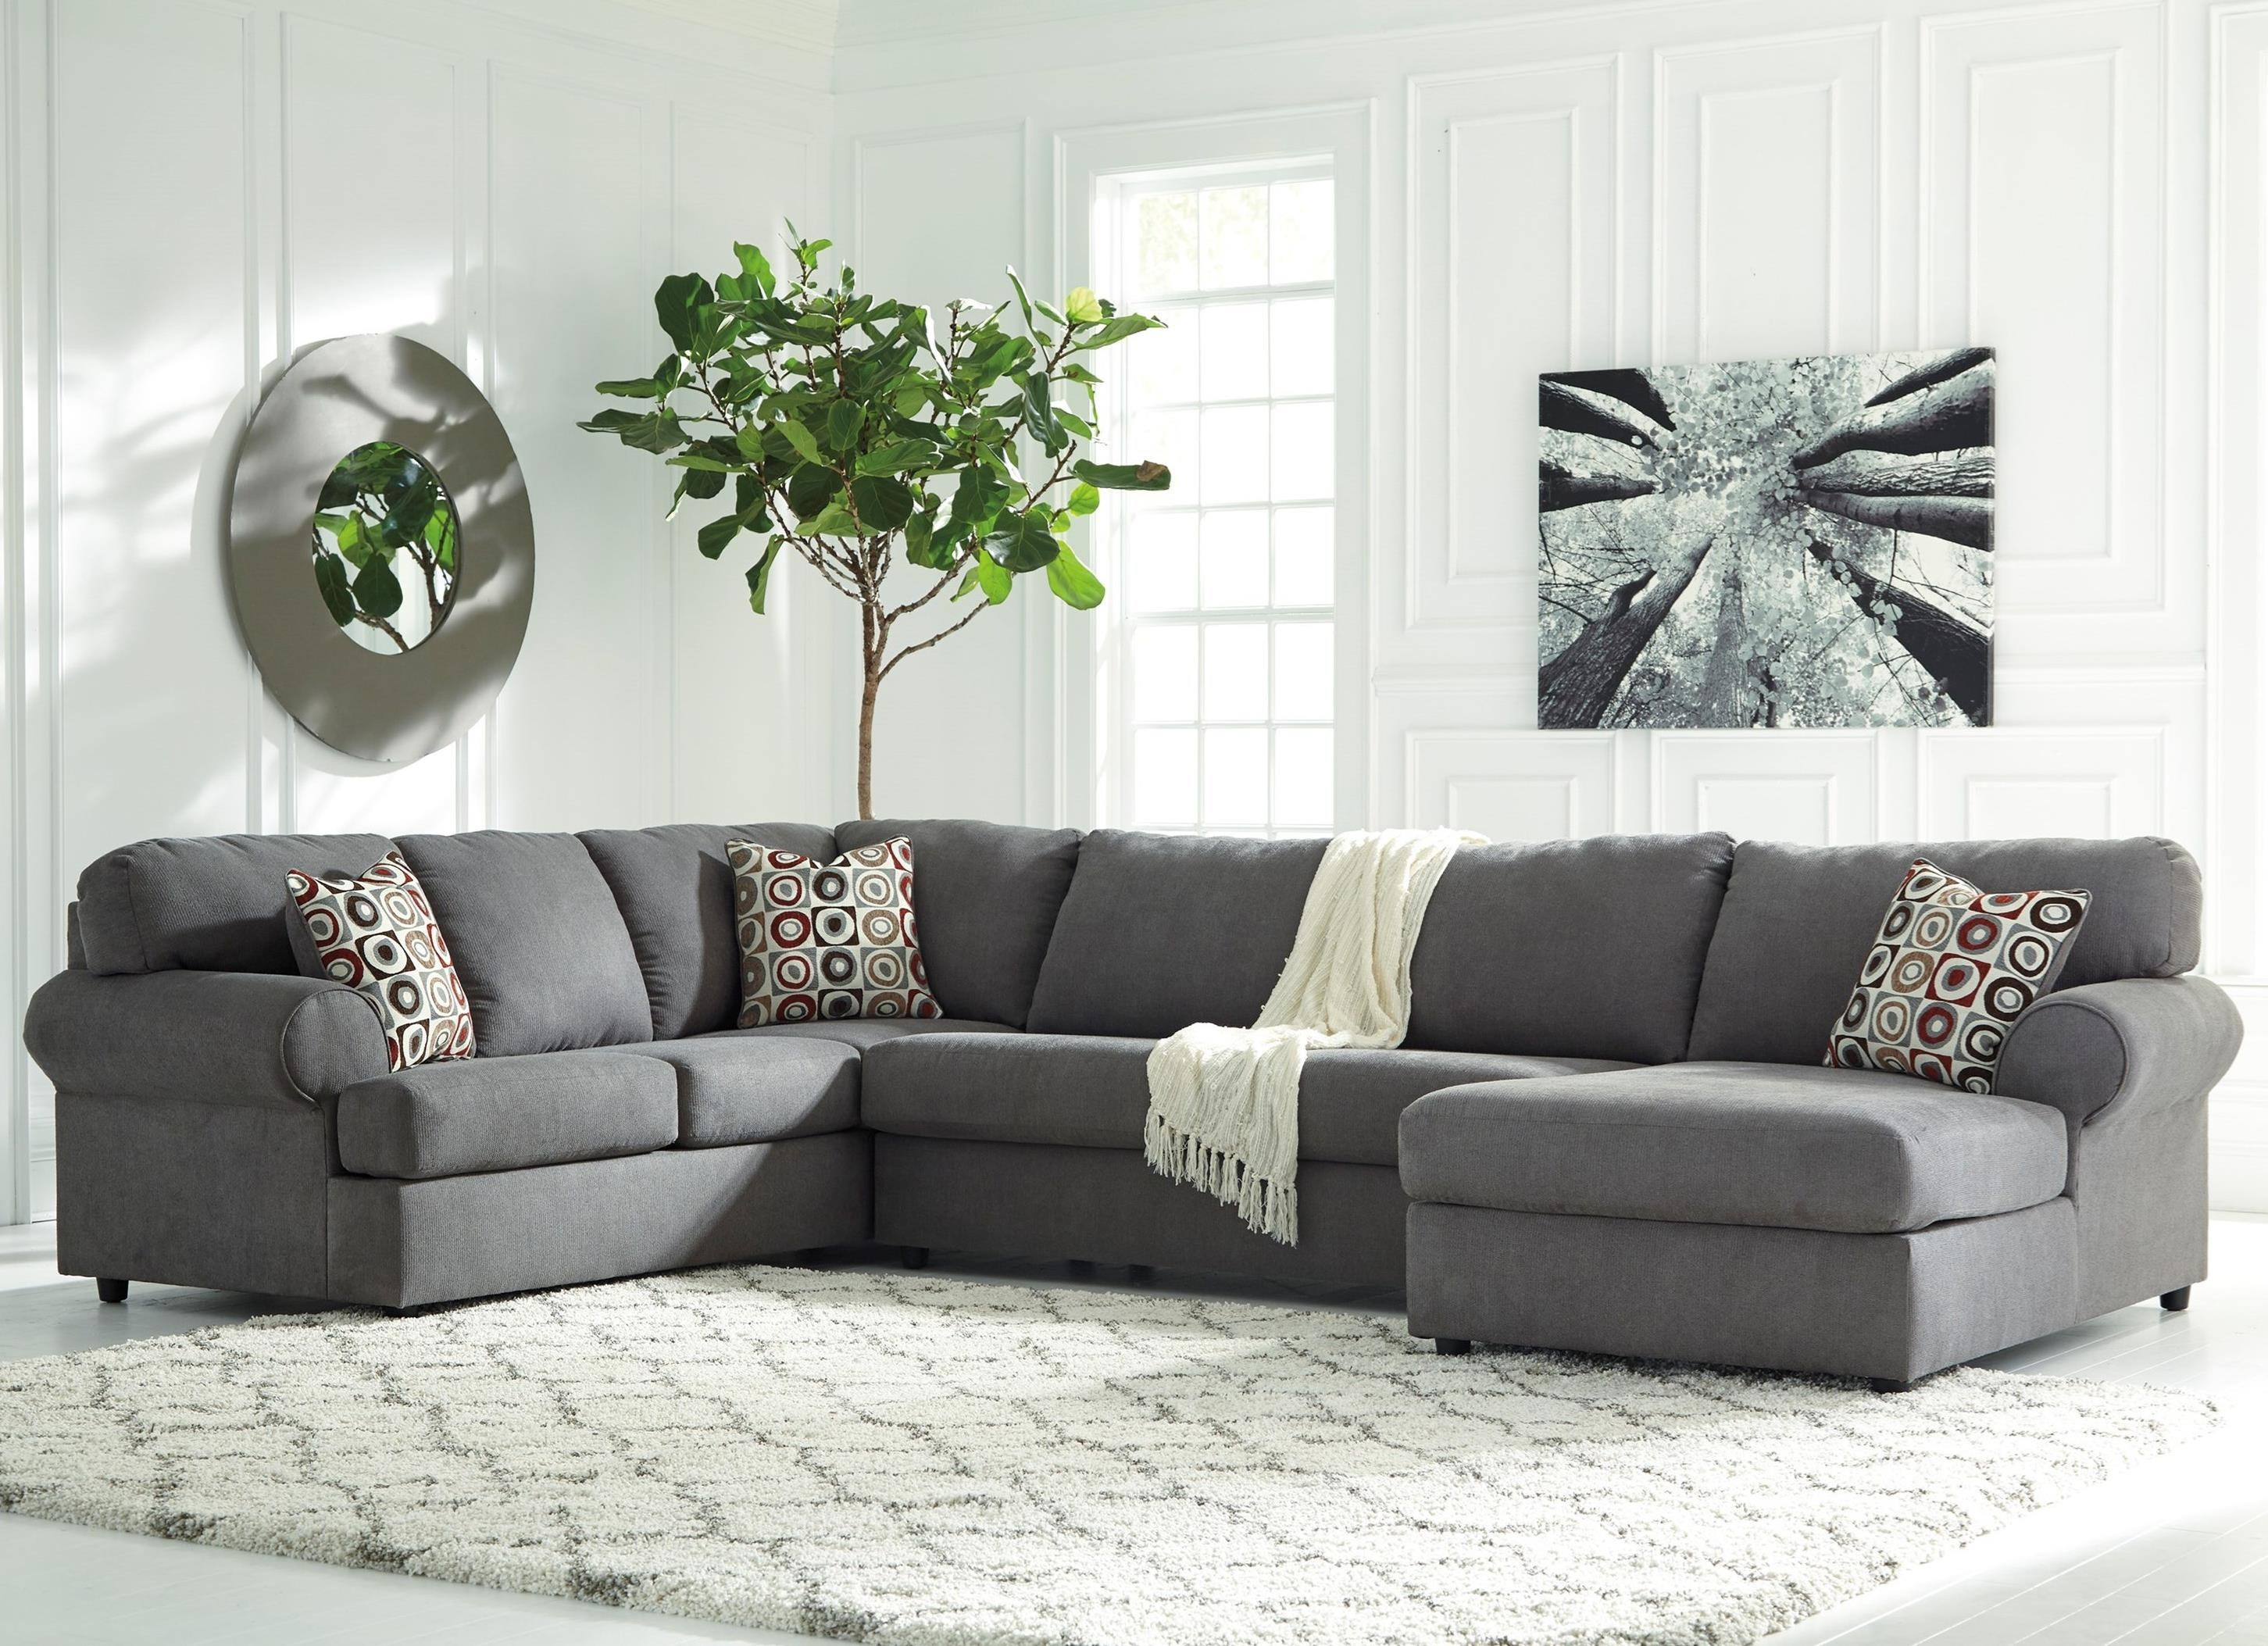 Marvelous Signature Design By Ashley Jayceon 3 Piece Sectional With Right Chaise